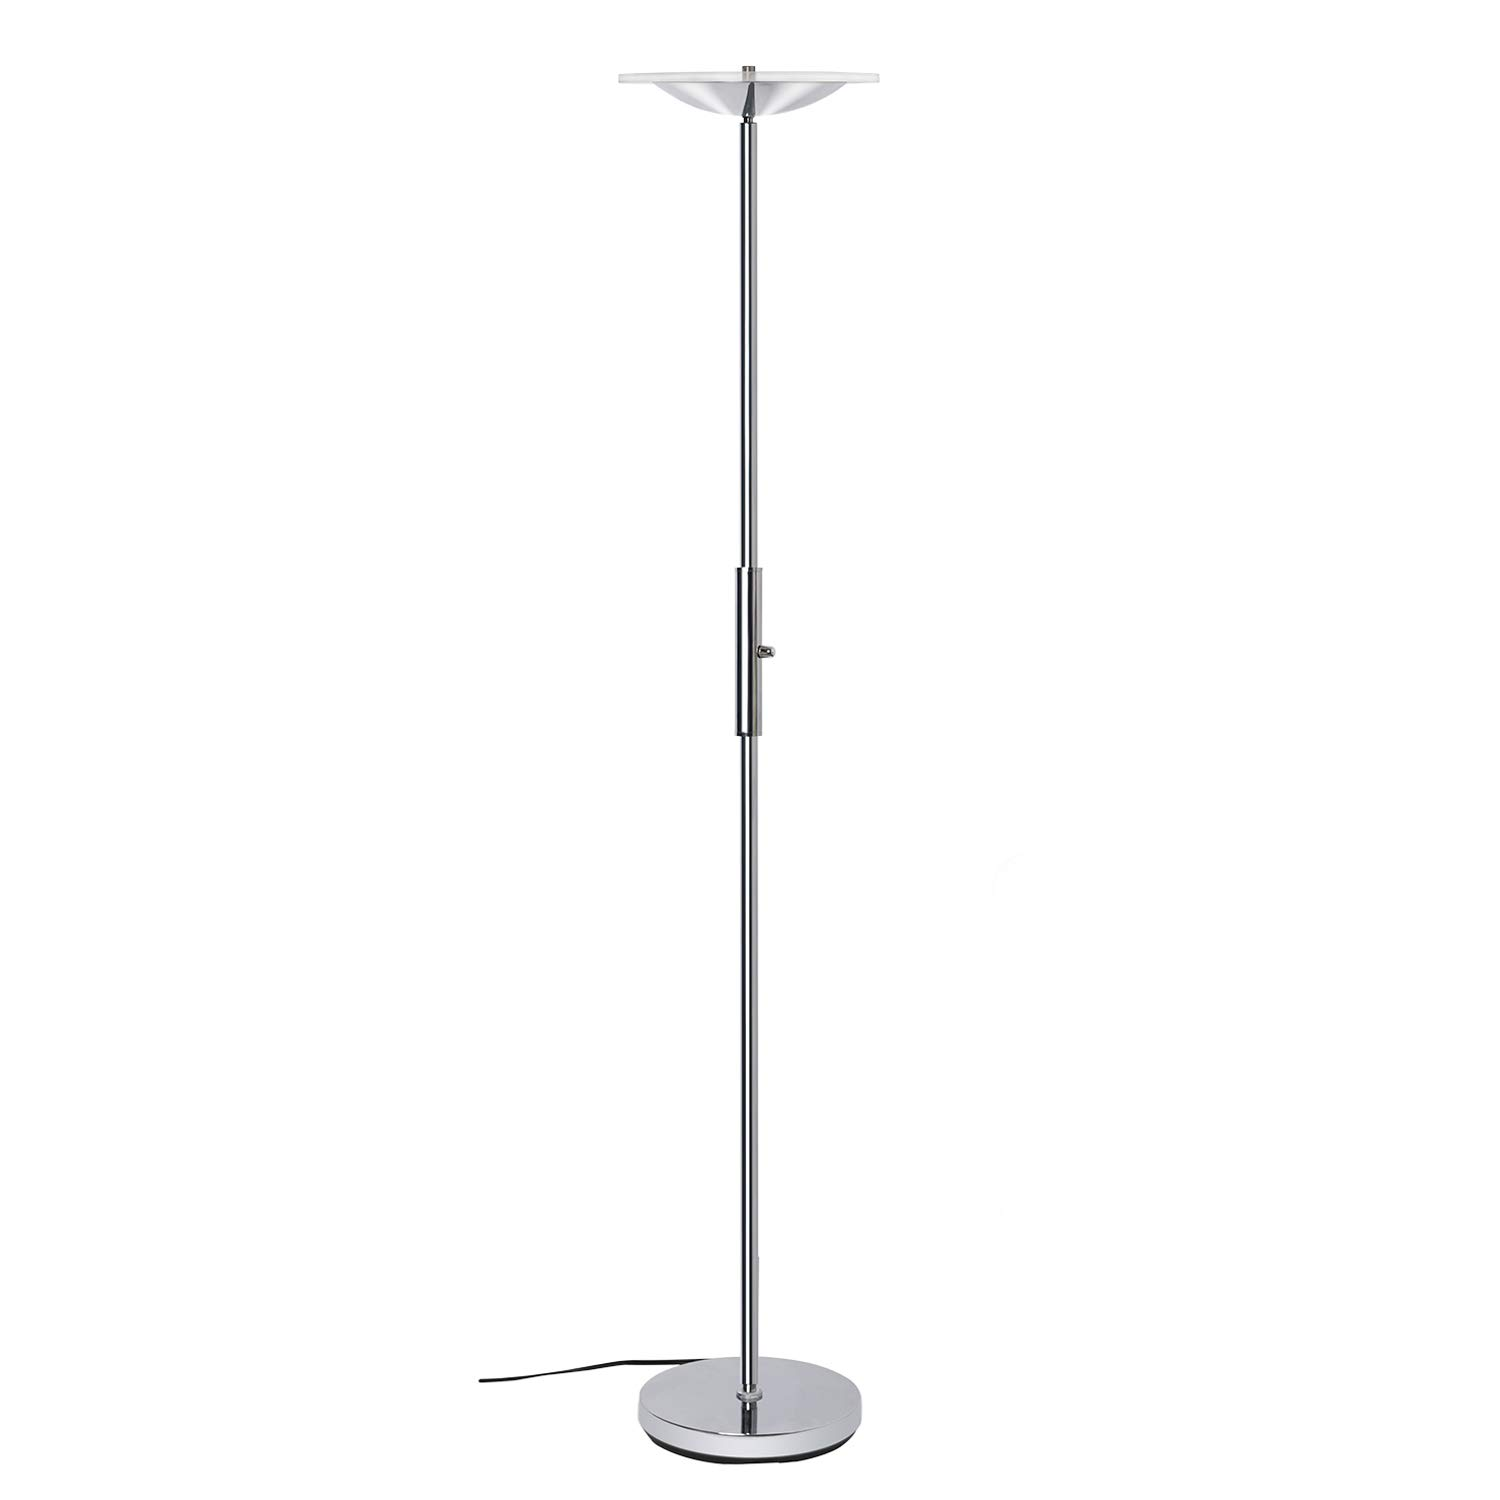 SUNLLIPE LED Remote Controll Torchiere Floor Lamp Acrylic Shade 18W 90° Top Adjustable Dimmable Tall Standing Lamp for Living Room, Bedroom and Office